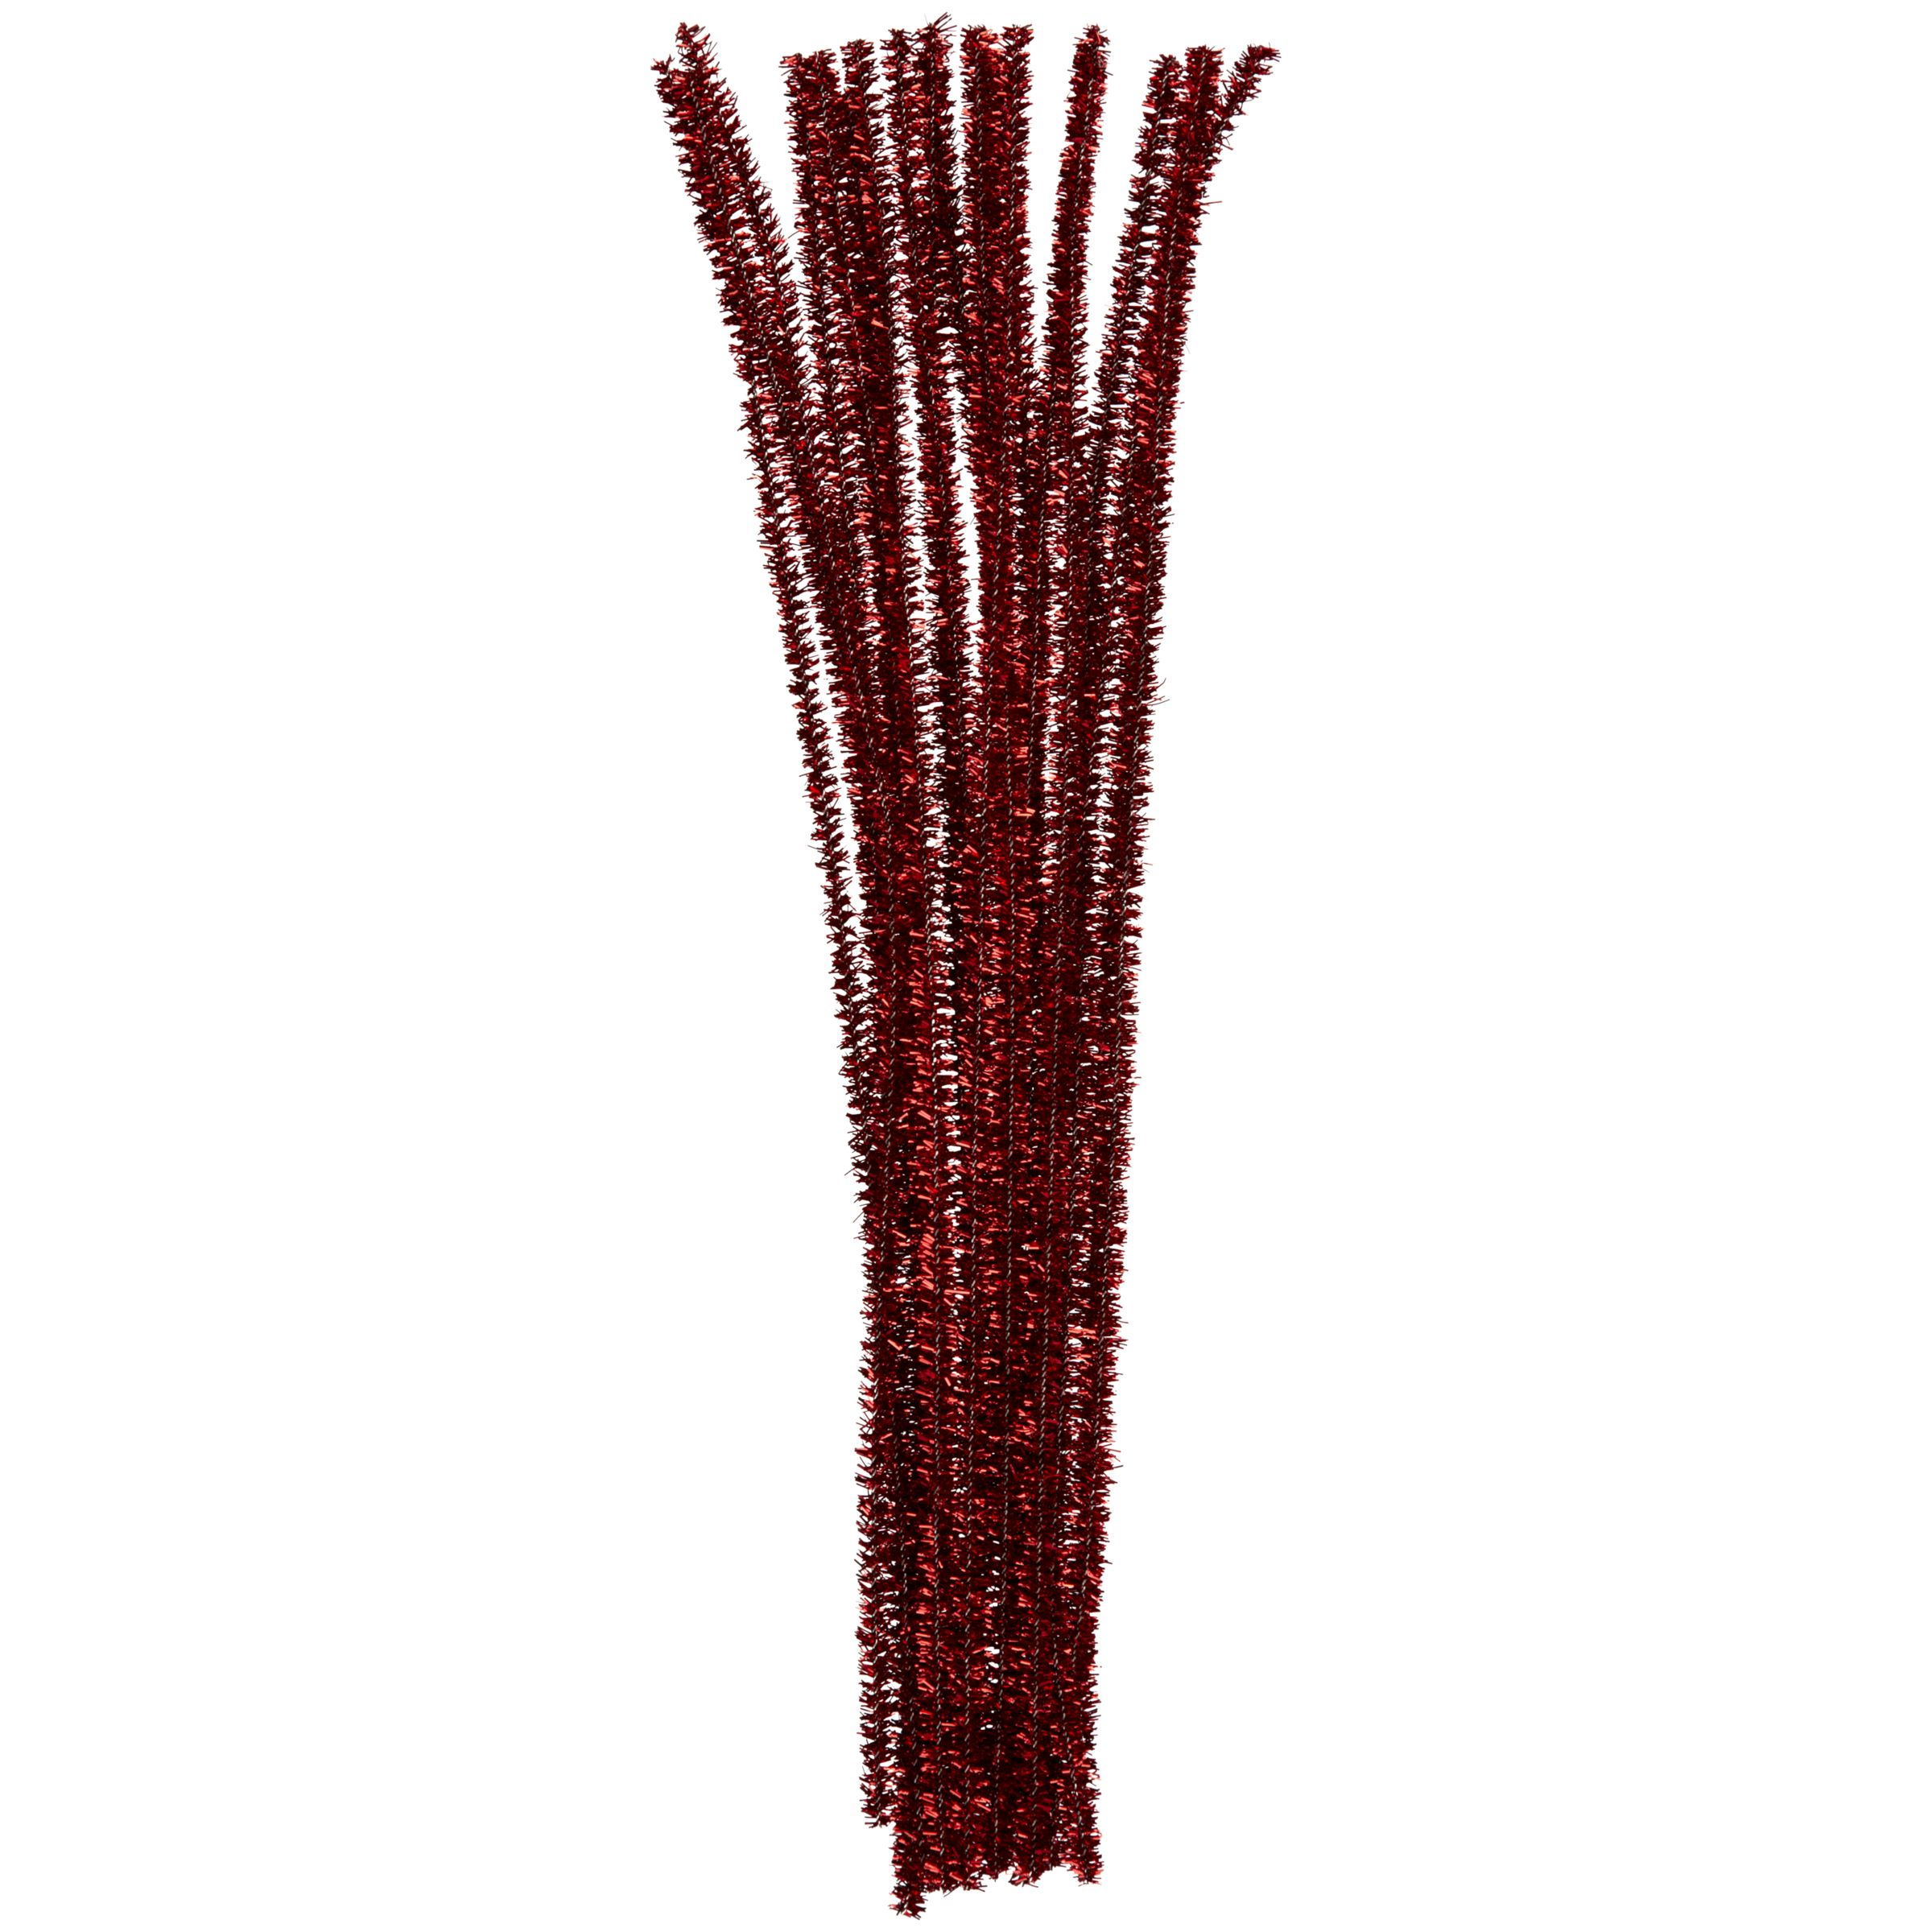 John Lewis Pipe Cleaners, Pack of 30, Red